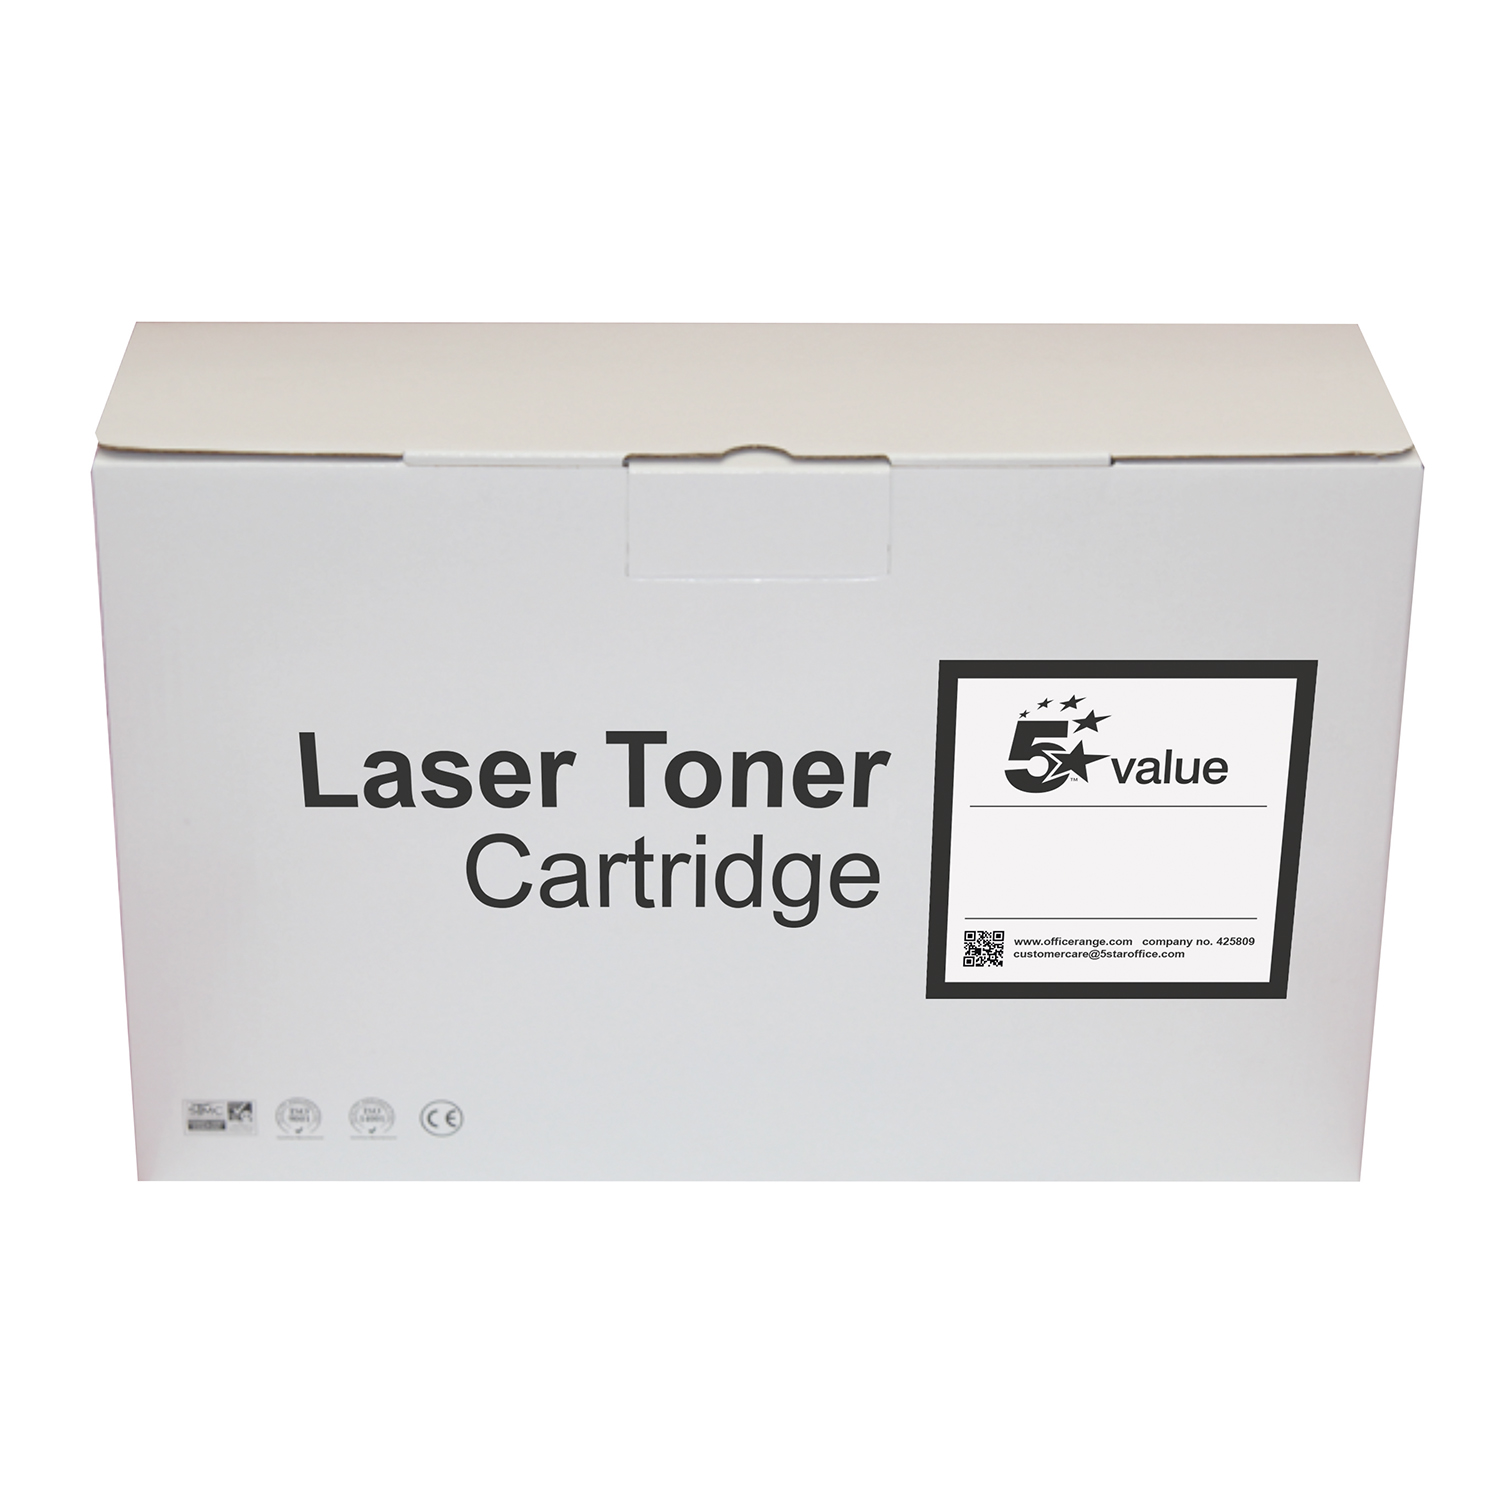 Laser Toner Cartridges 5 Star Value Oki Toner Cartridge Black 44973536